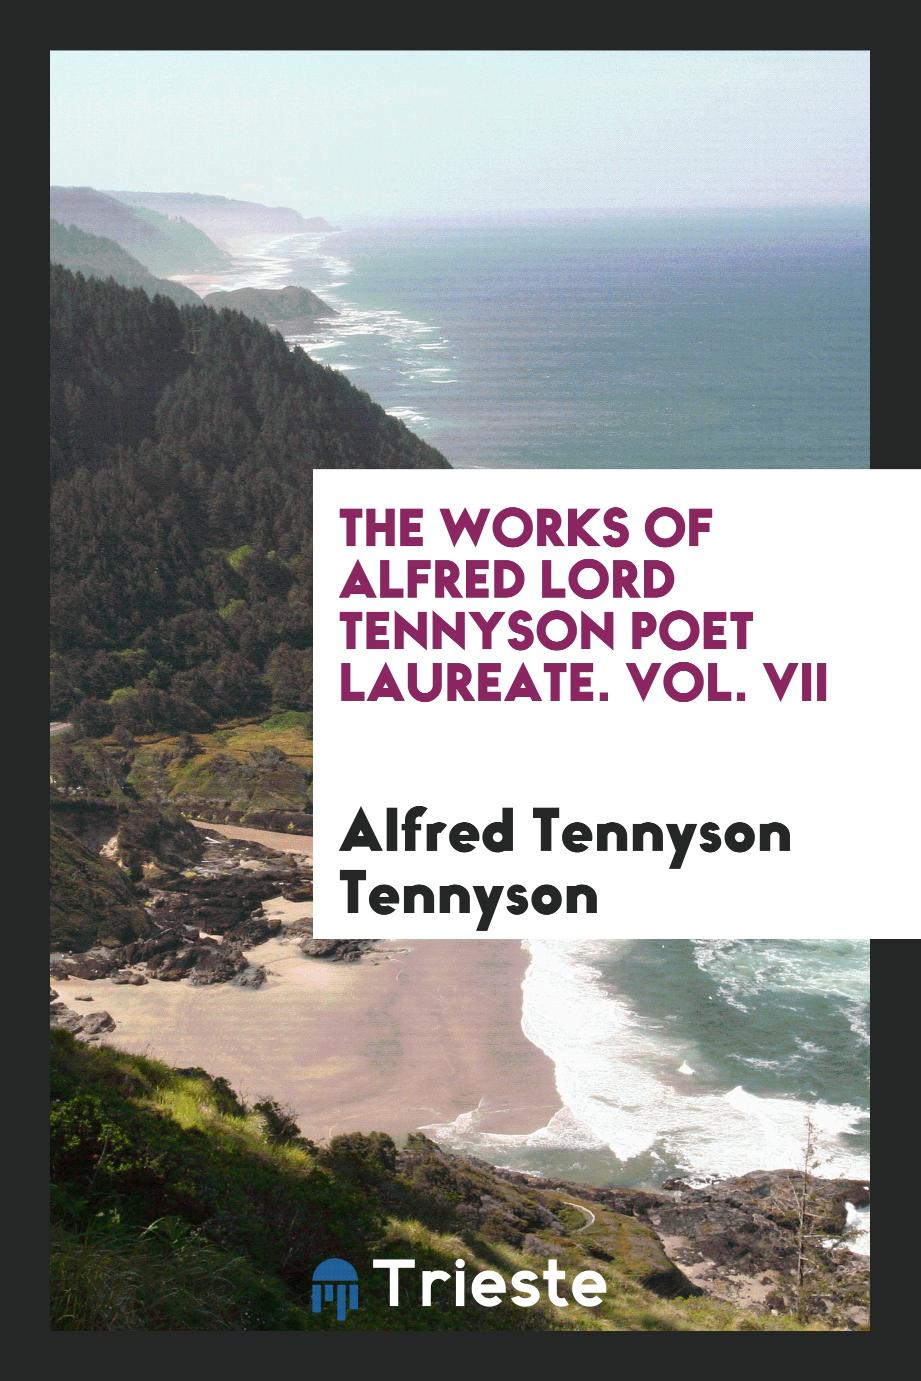 The works of Alfred Lord Tennyson poet laureate. Vol. VII